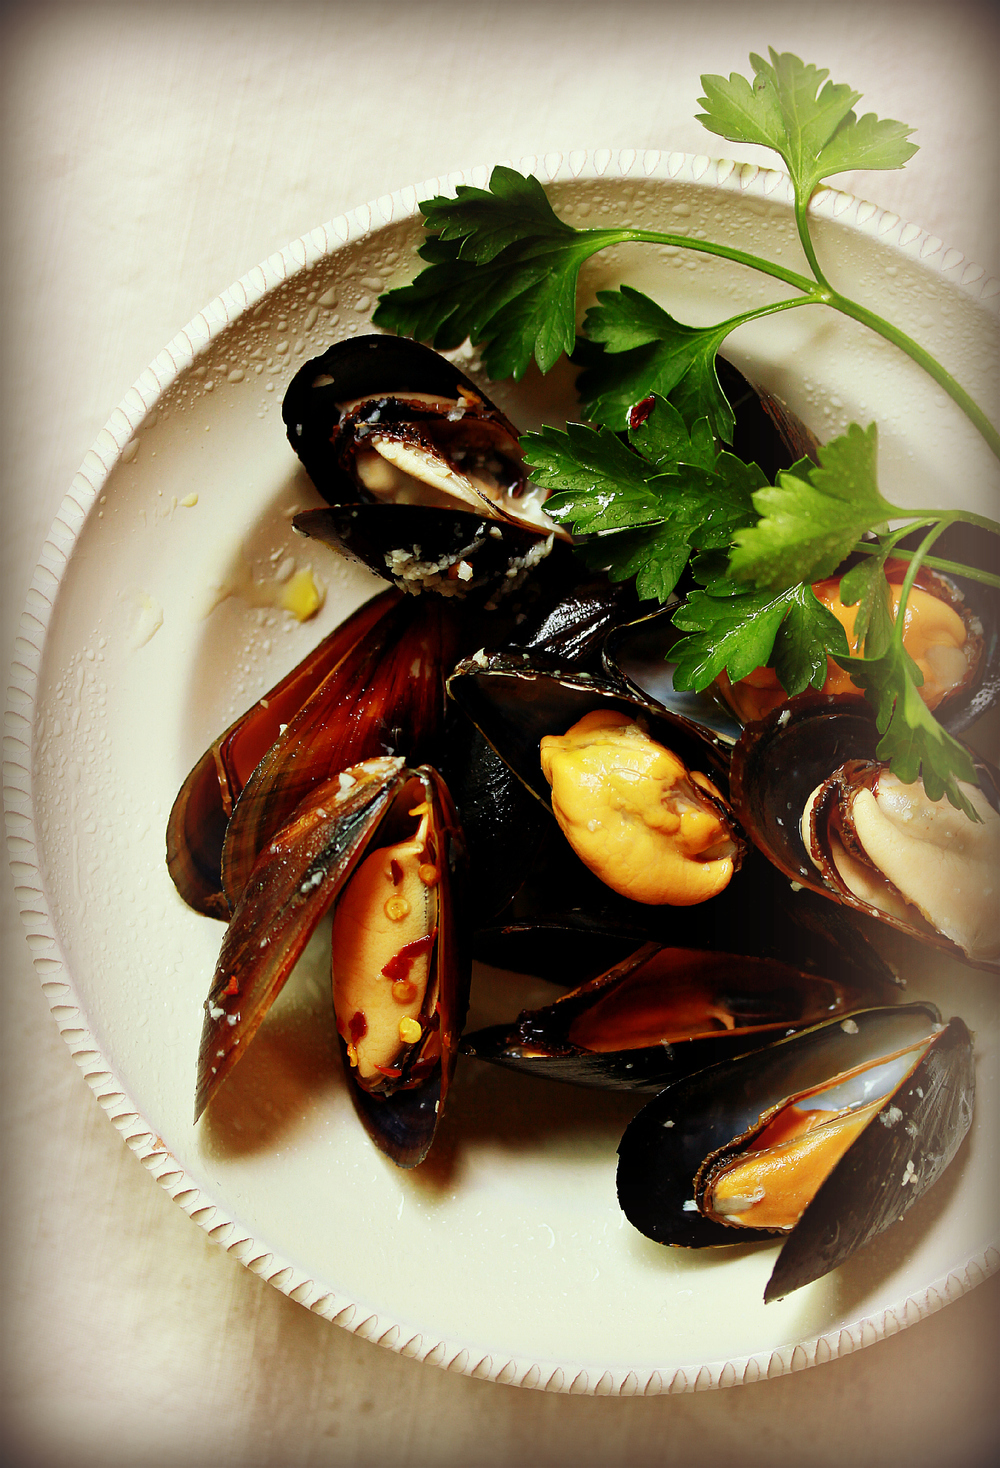 Simple Steamed Mussels by Dena T Bray